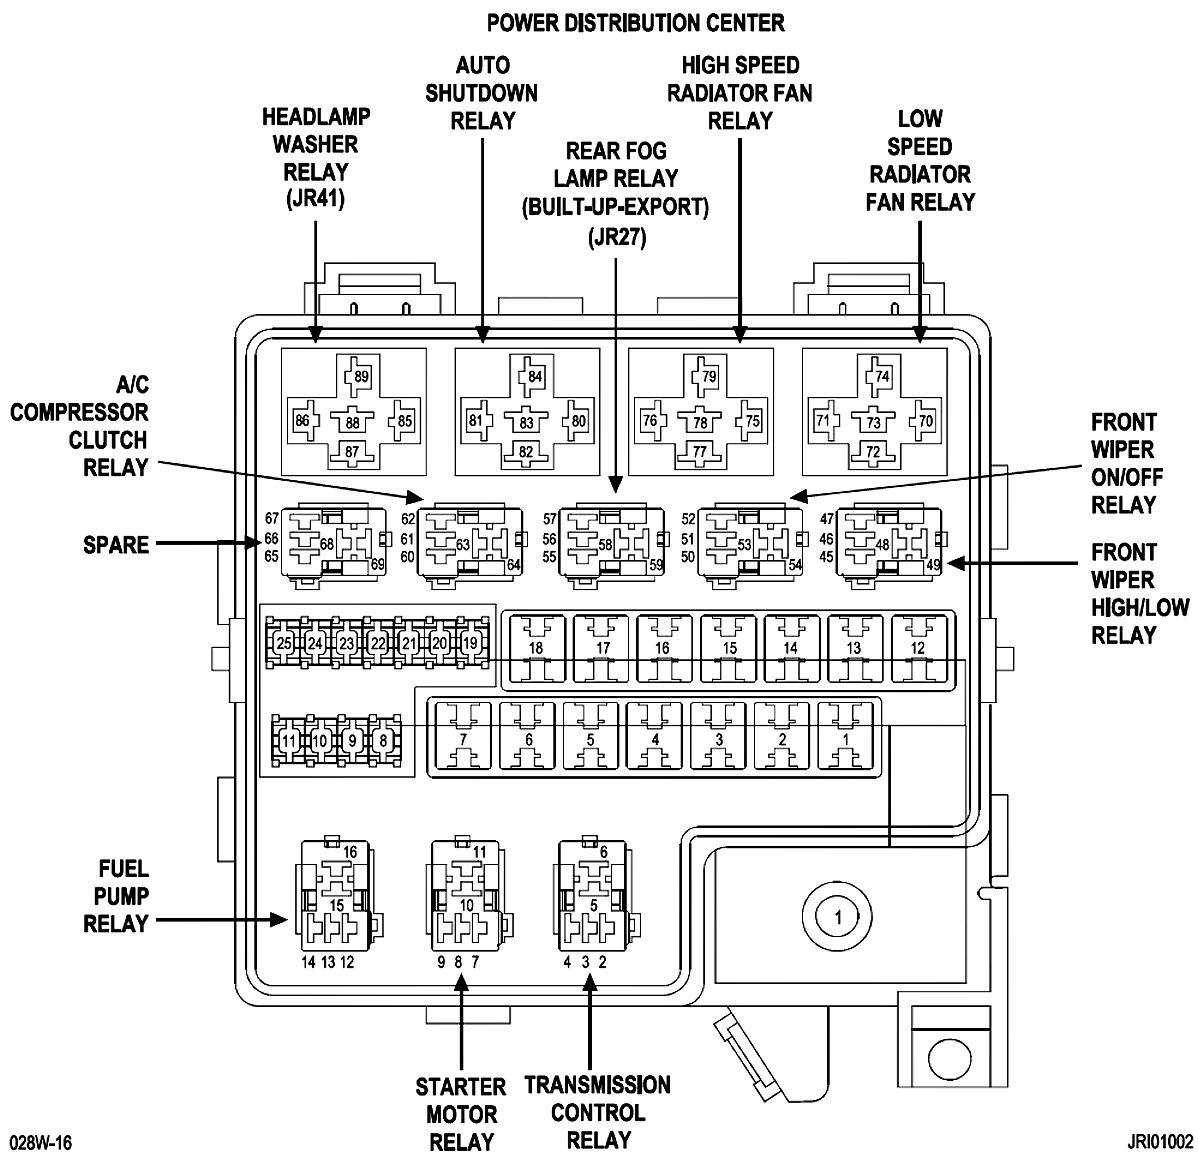 2003 Dodge Stratus Fuse Box Location Trusted Wiring Diagram 2004 Image Details 2005 Ram 1500